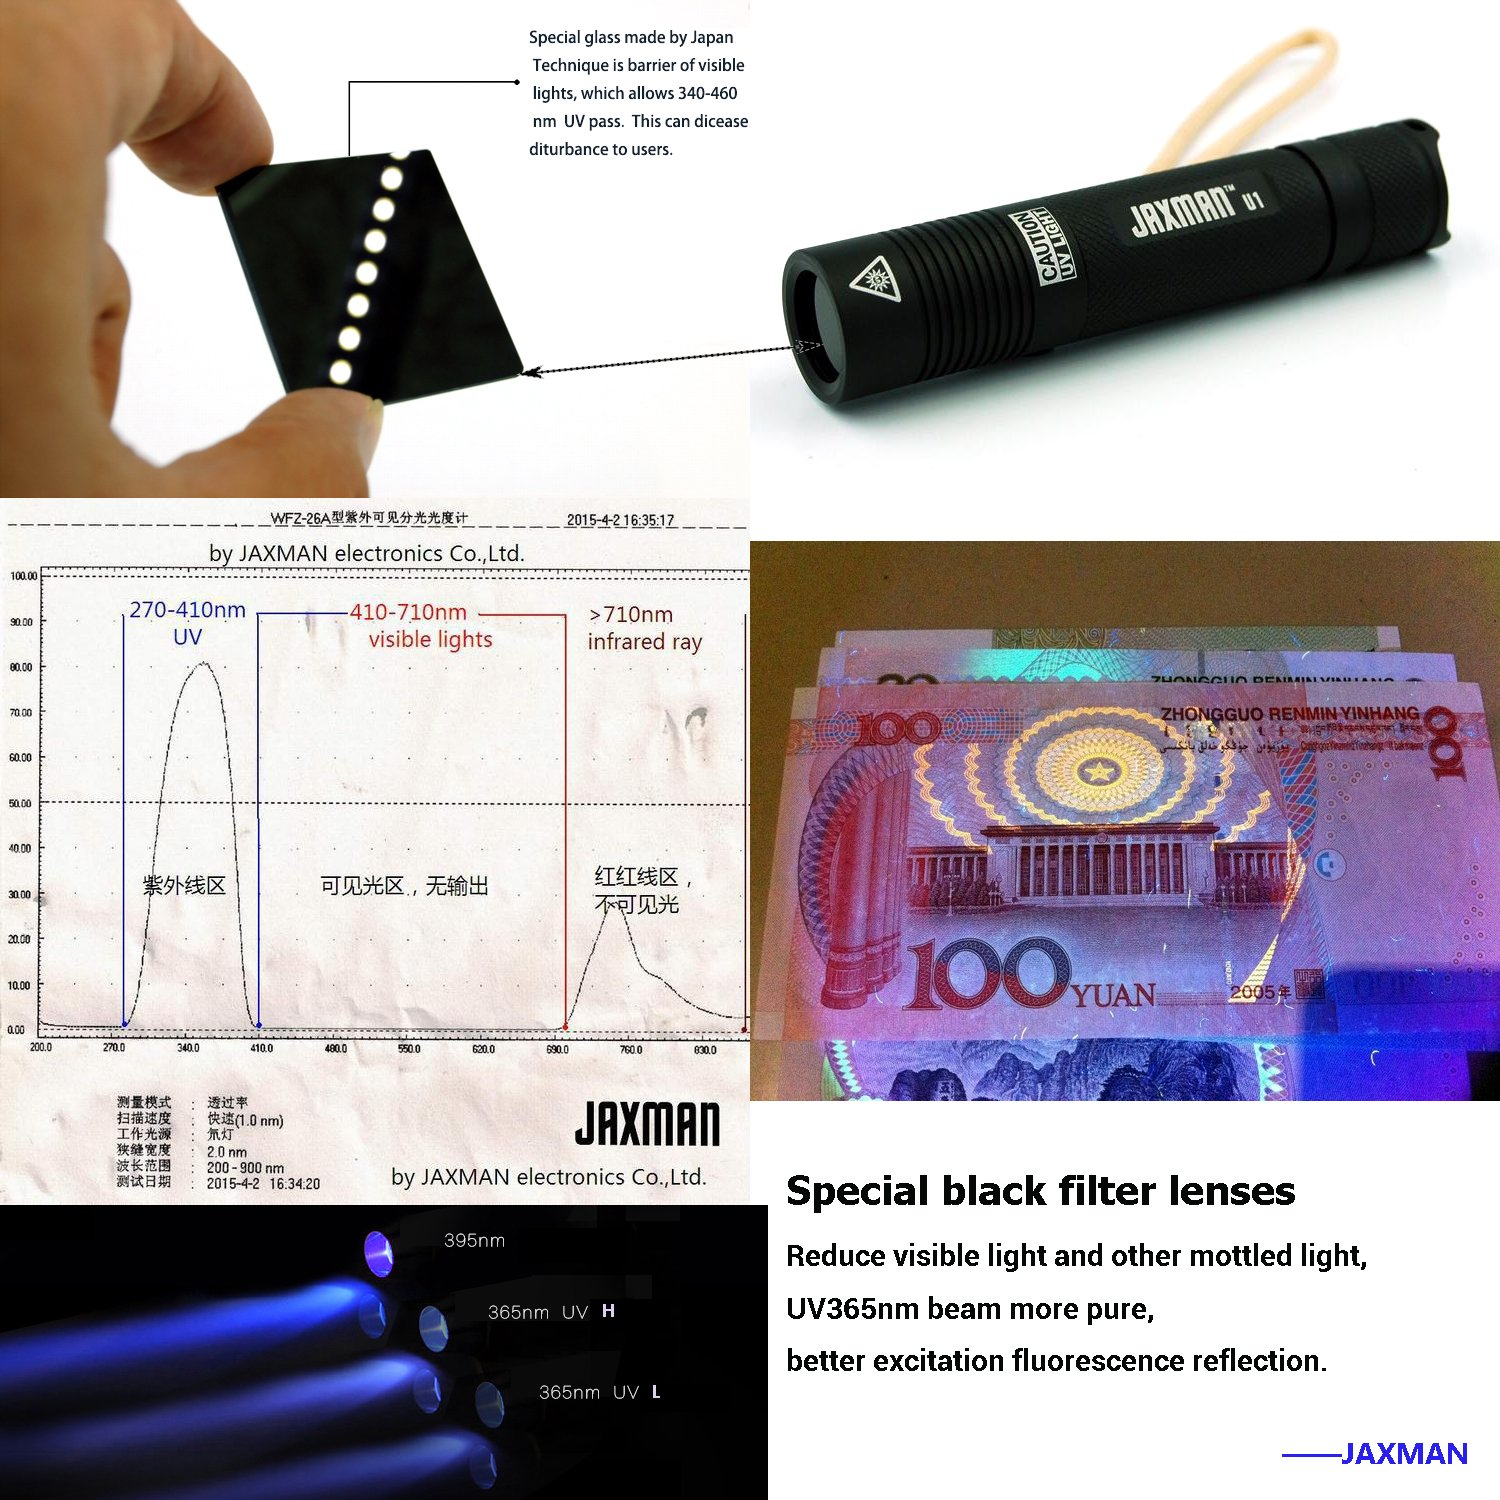 JAXMAN MINI 365nm UV flashlight HIGH POWER PROFESSIONAL 3W Nichia Dual LED Works Even in Ambient Light. 18650 Rechargeable Battery Included - Registered Design by JAXMAN (Image #4)